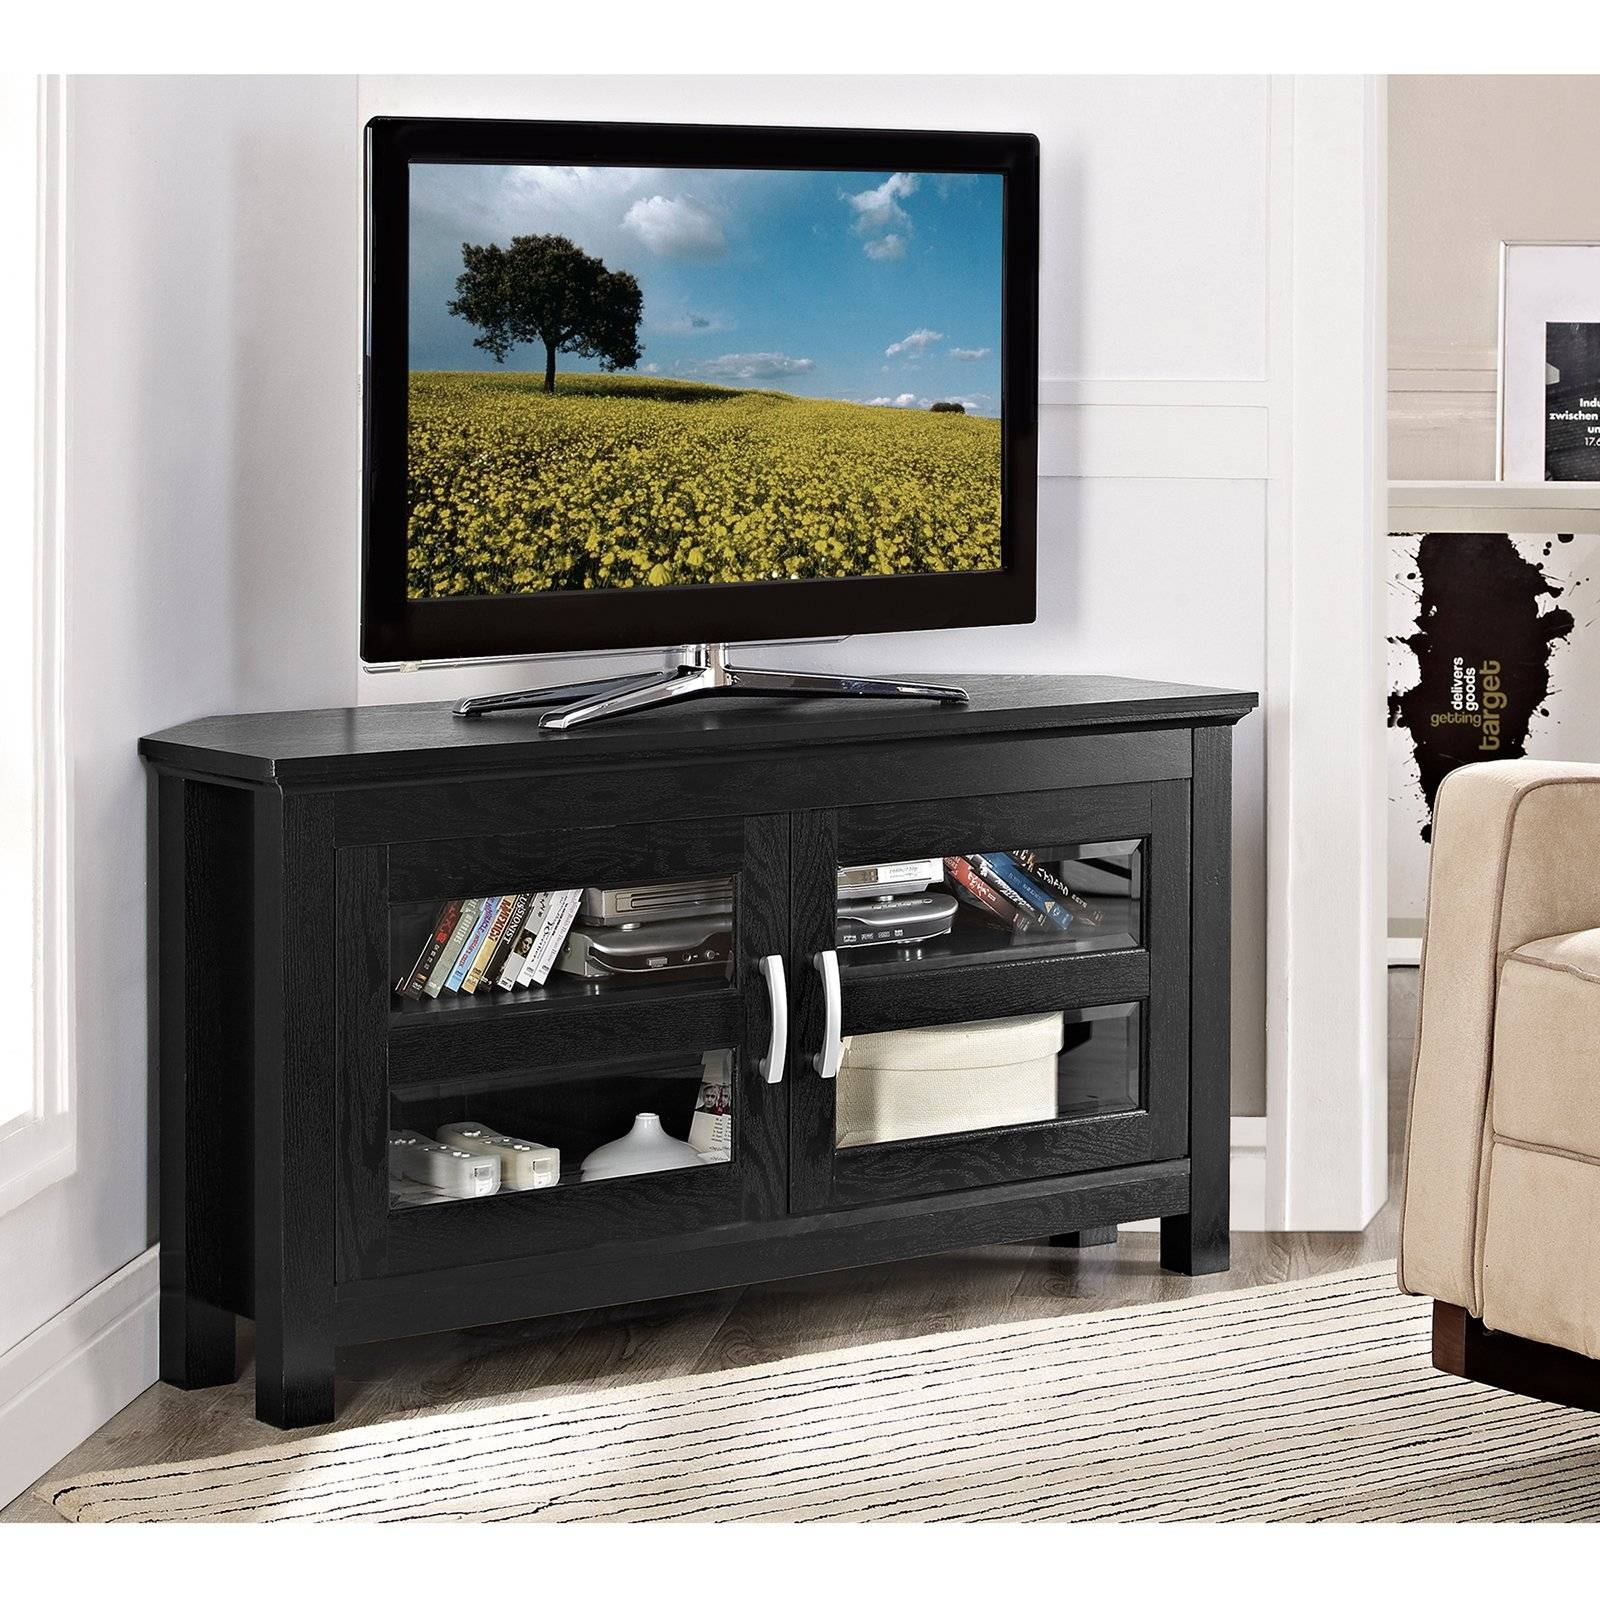 Compton Black Corner Tv Stand - Walmart with Black Corner Tv Cabinets (Image 3 of 15)